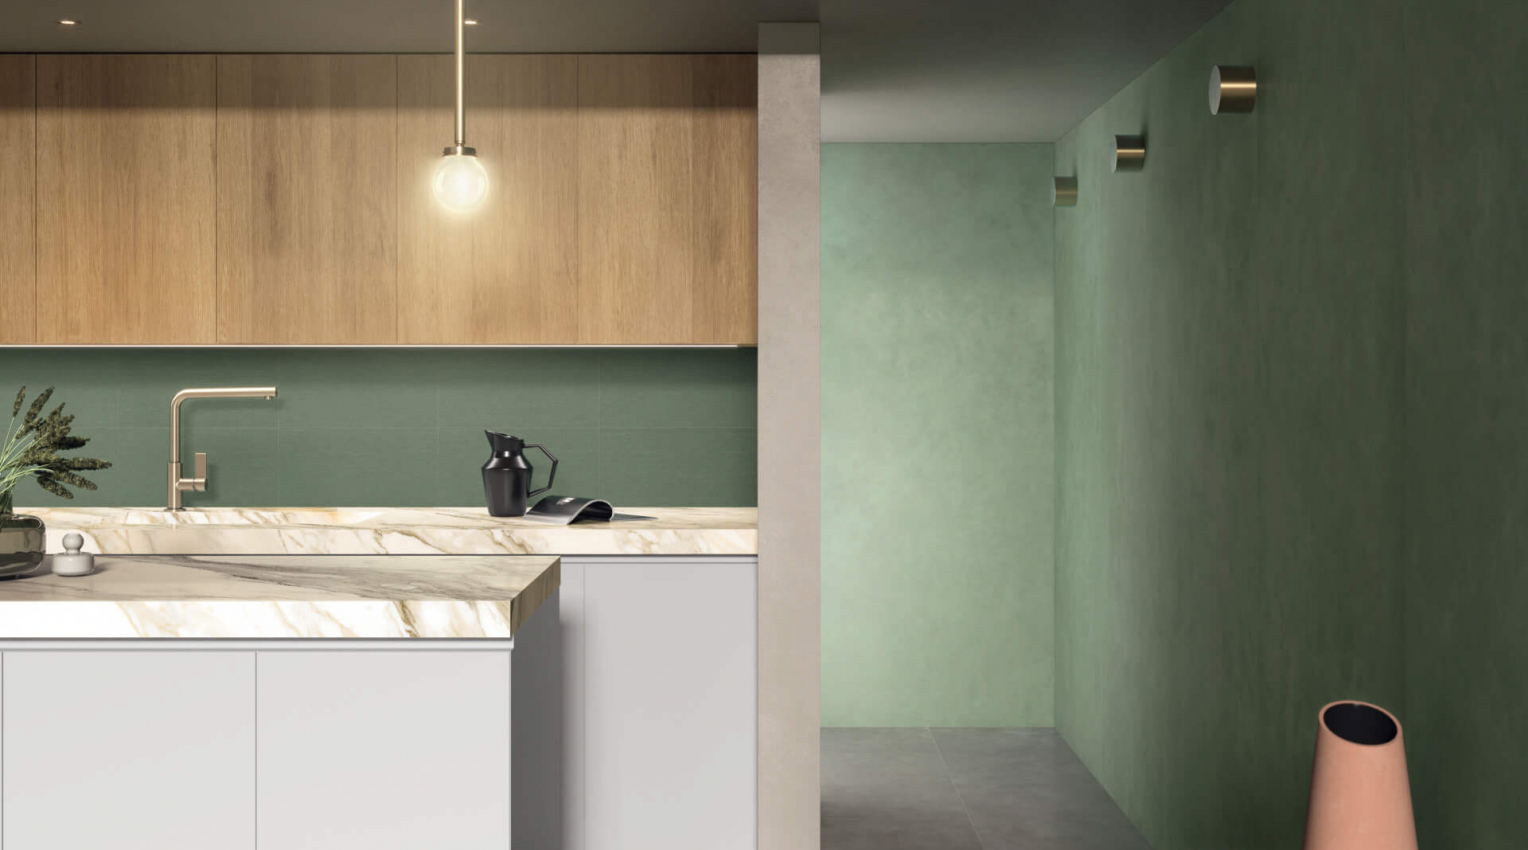 10.Kitchen Render 6 Modifica